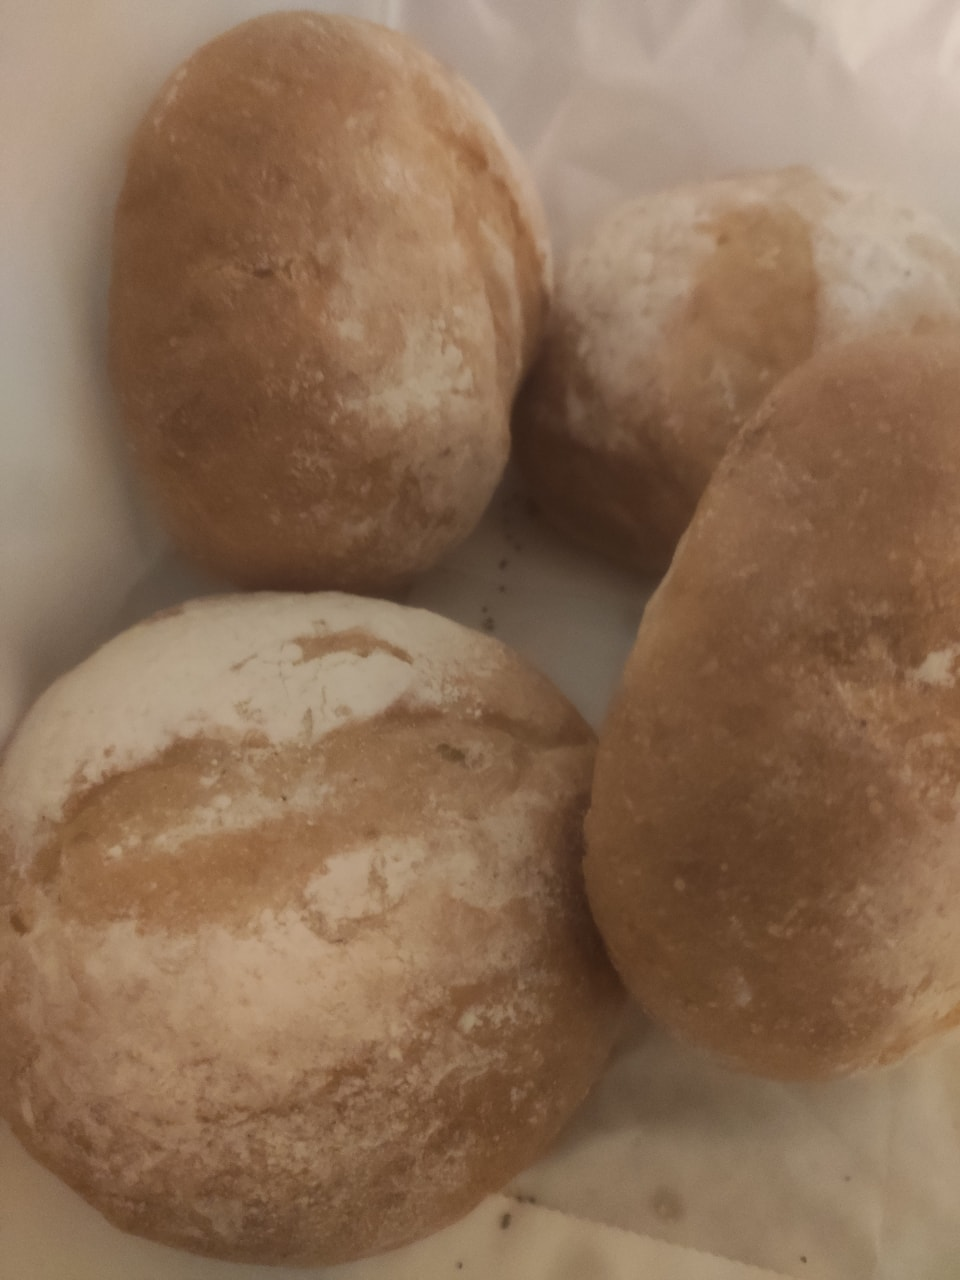 White buns from Pesso Bageri